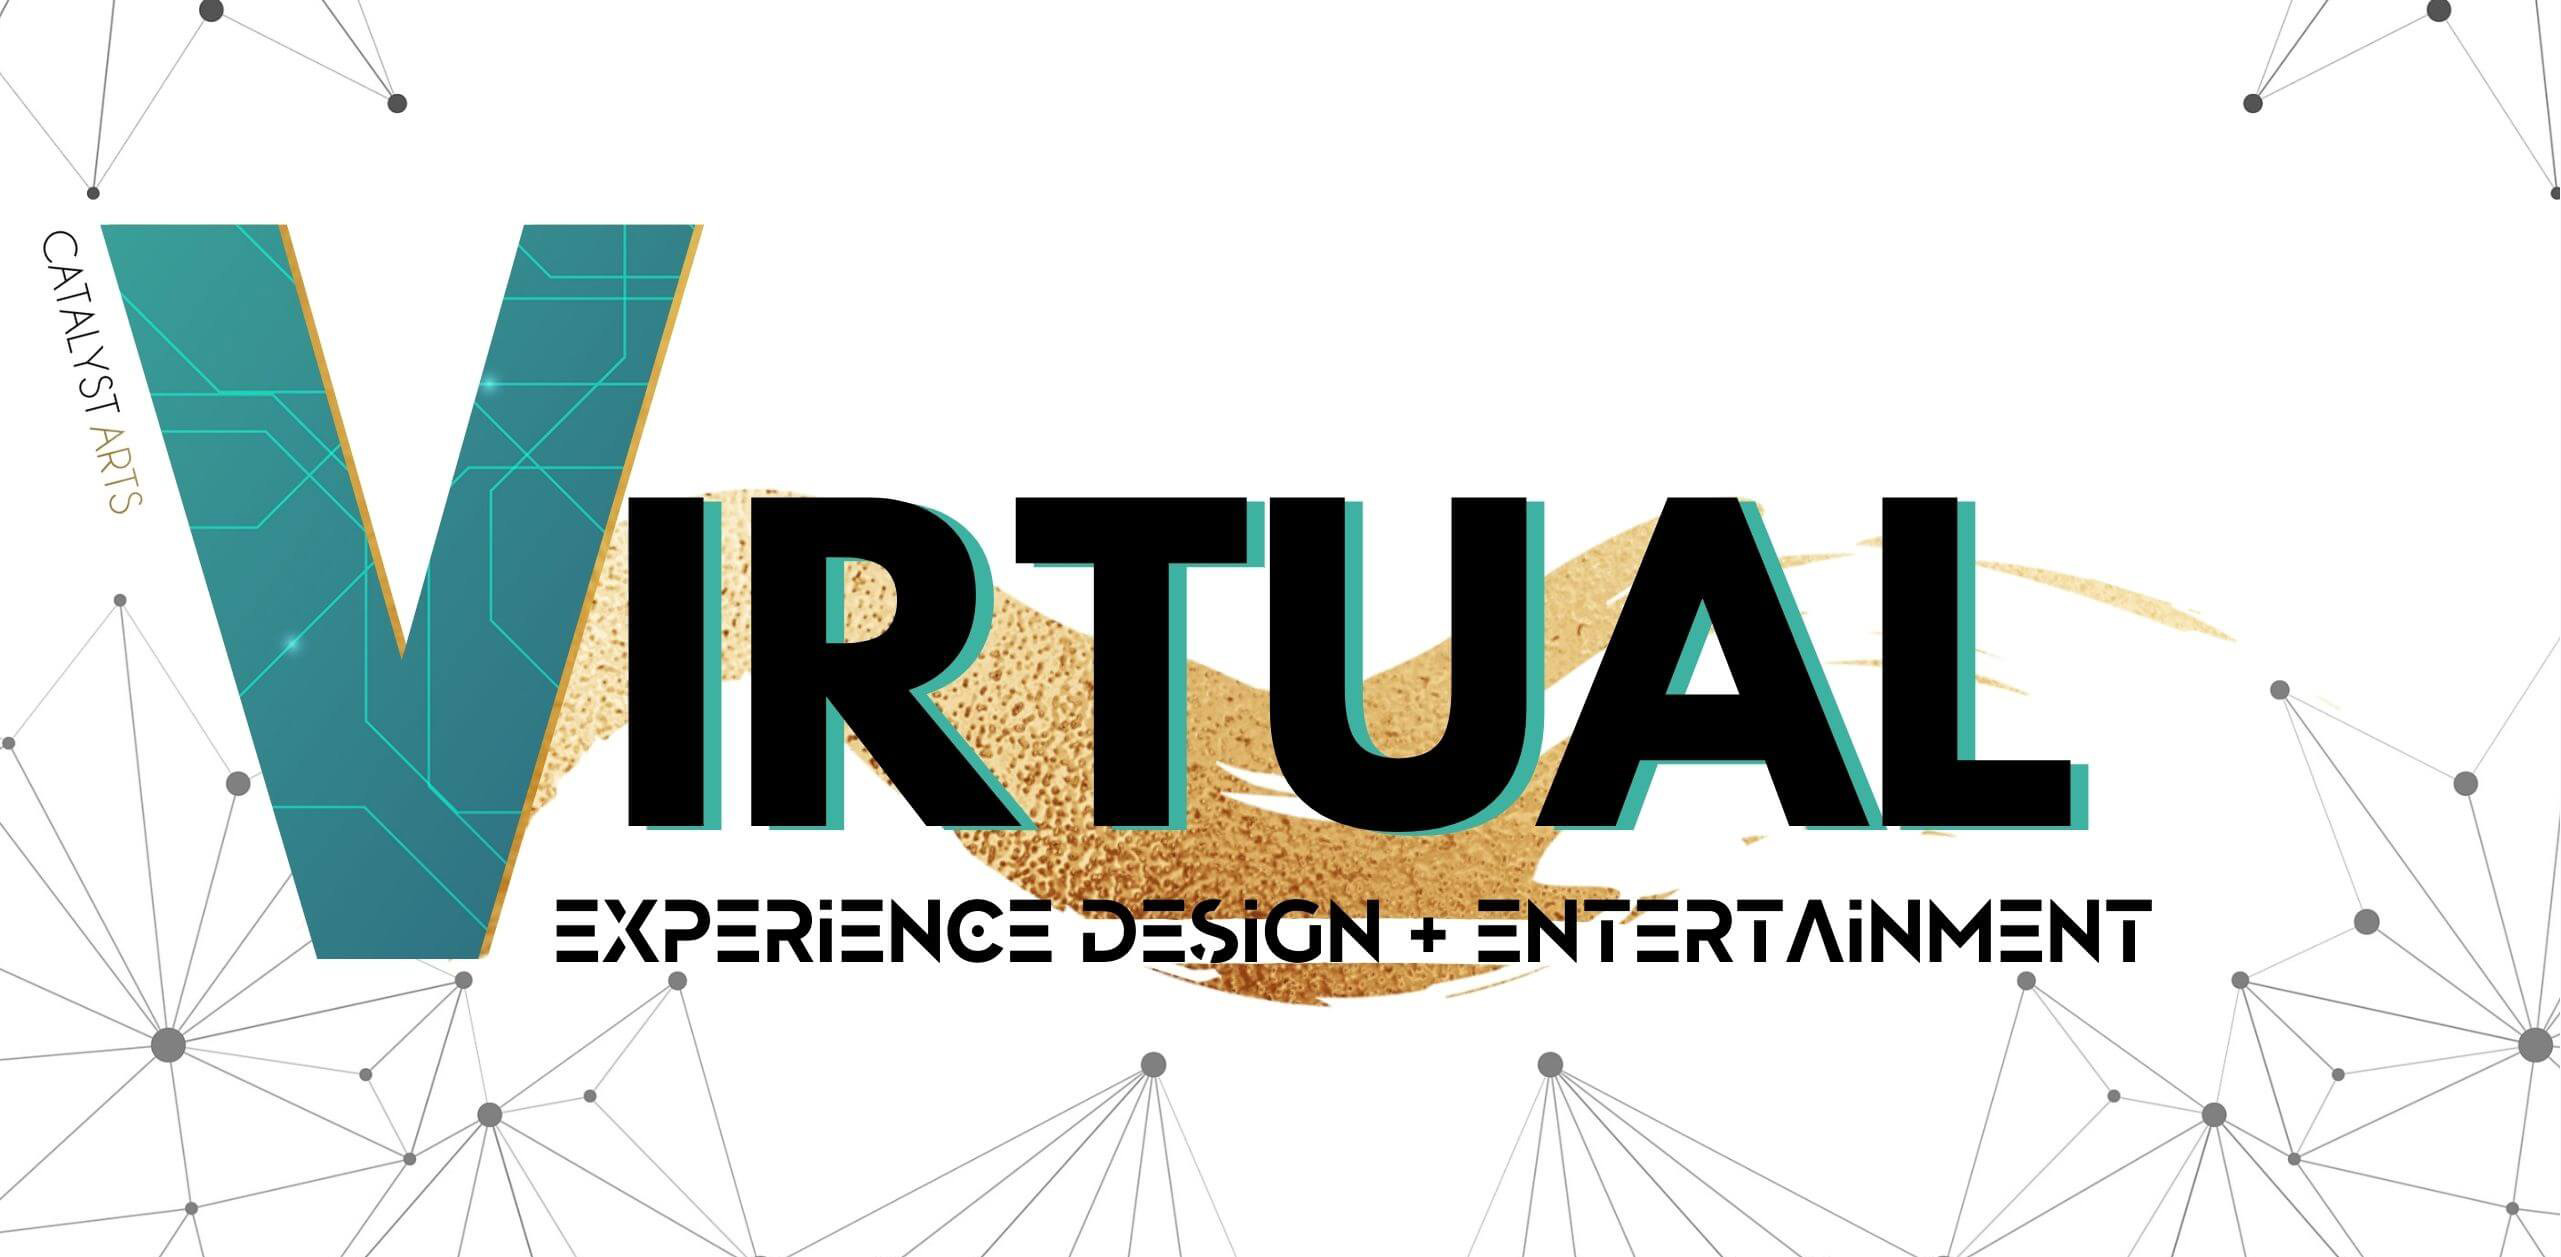 Catalyst Arts Virtual offers Experience design & entertainment for virtual & hybrid events